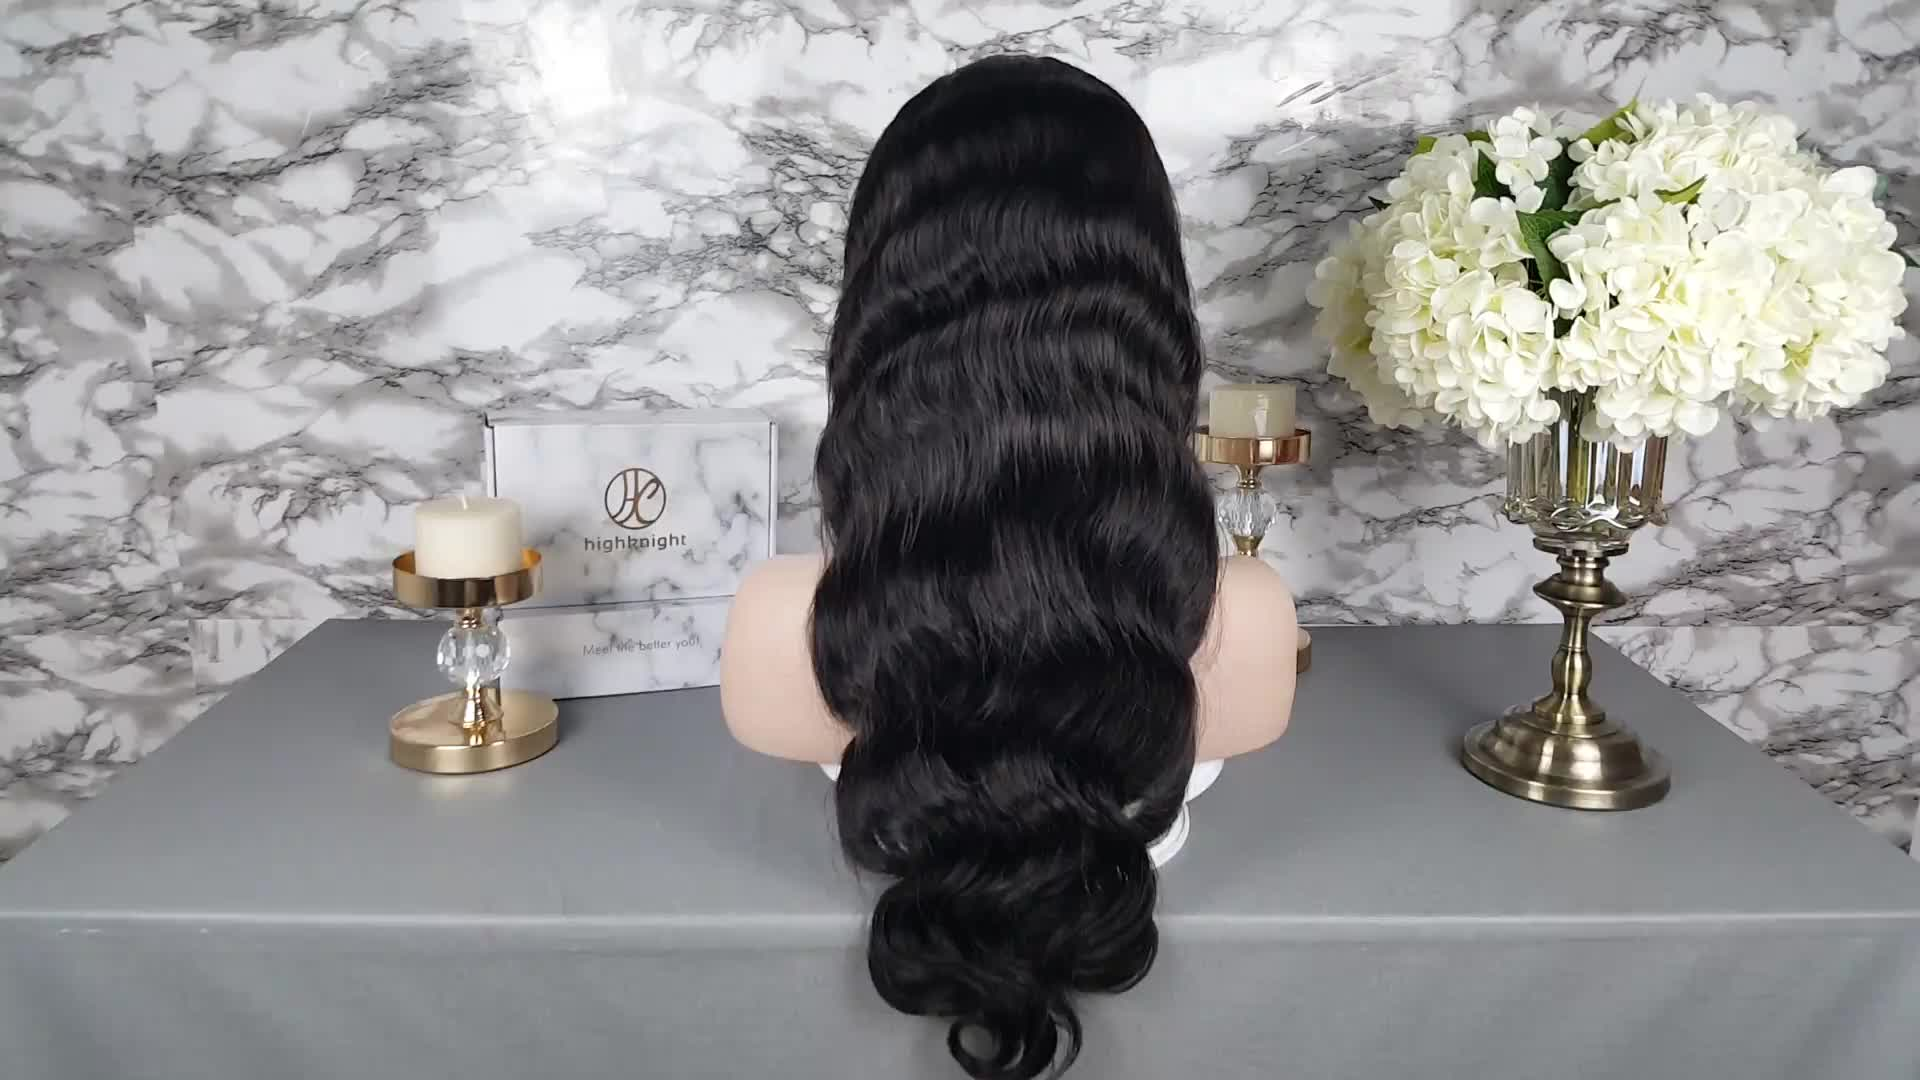 Highknight Body Wave Brazilian Virgin Human Hair Transparent Lace Front Wigs ,Full Lace Wig Unprocessed 100% Human Hair Wigs